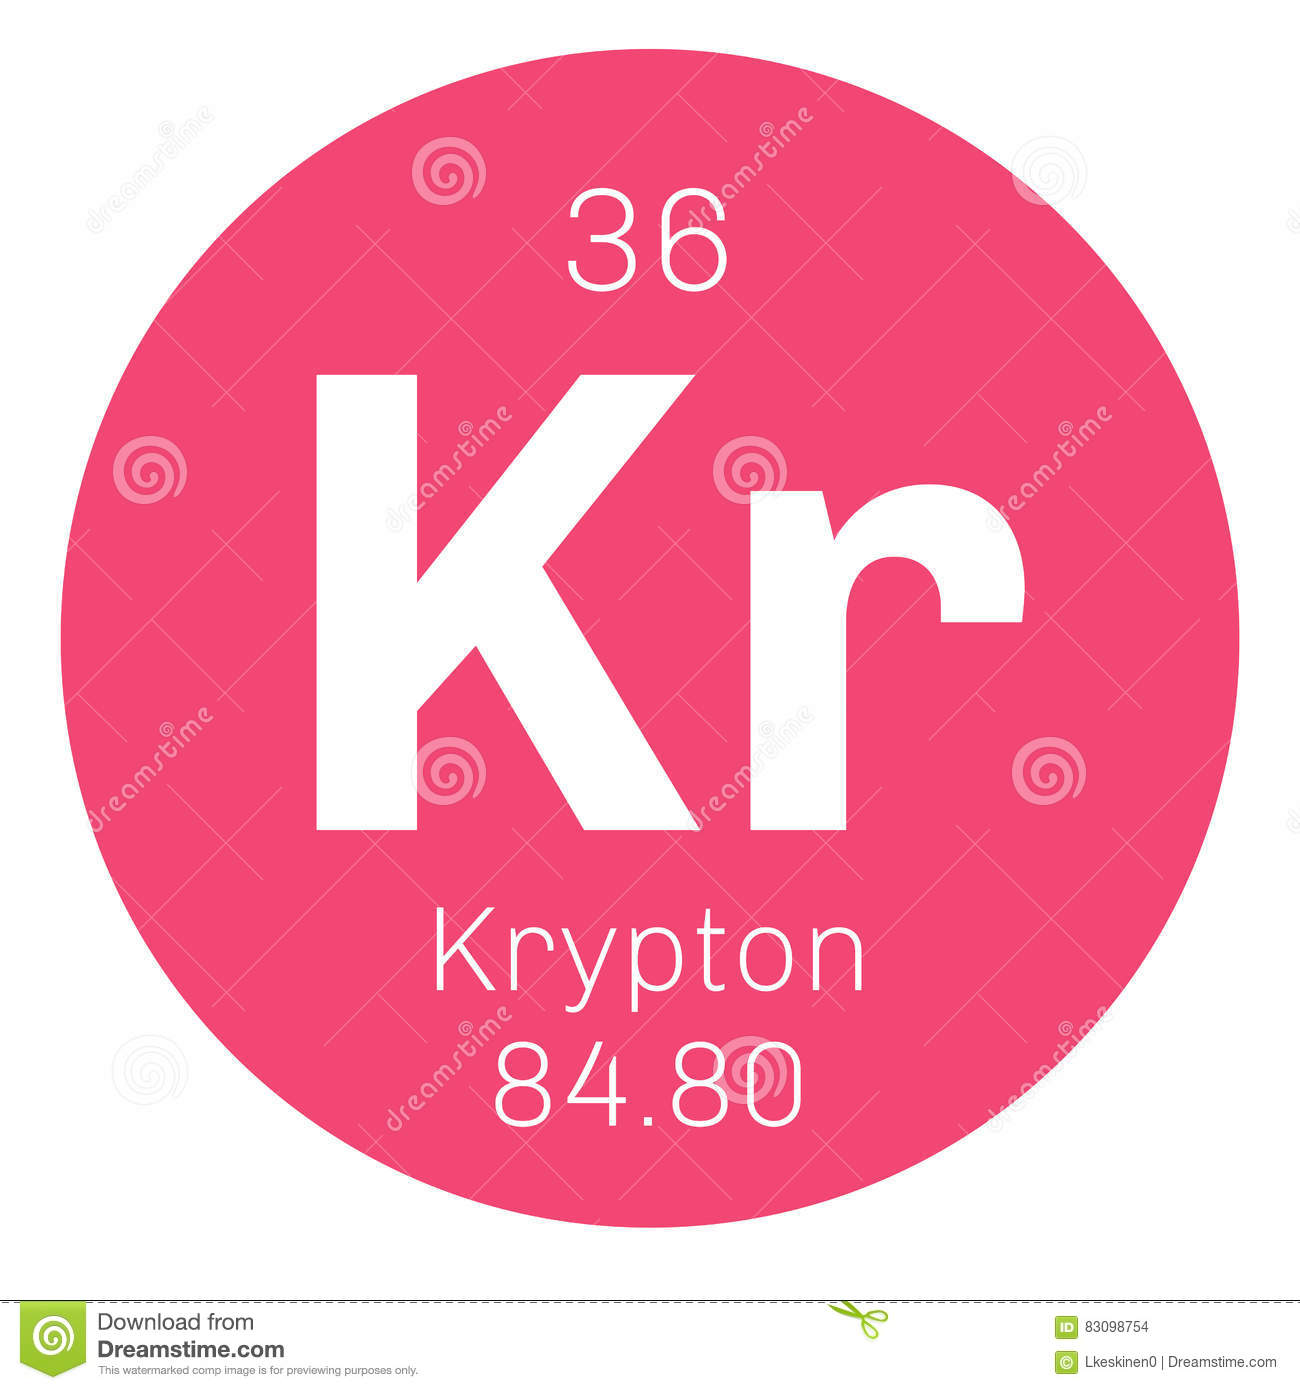 Krypton chemical symbol image collections symbol and sign ideas krypton chemical element stock vector image of design 83098754 krypton chemical element buycottarizona buycottarizona